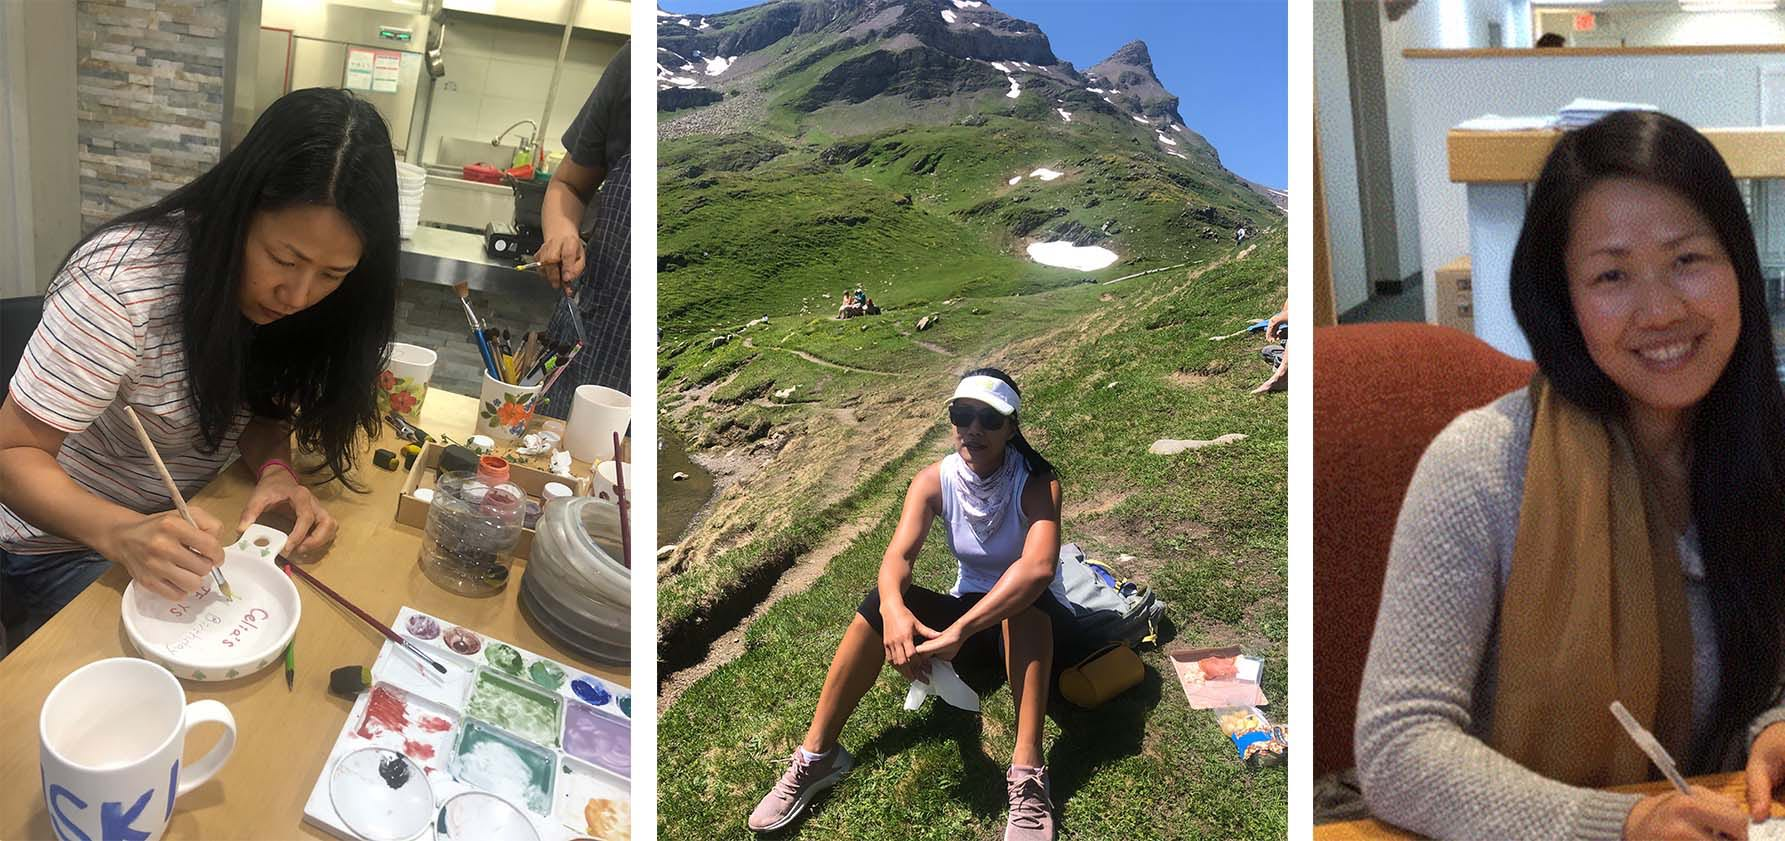 From left to right: Yosung Song, assistant professor of education, works on art projects with students in the classroom, taking a break on a mountainous hike, working in her office at Moravian College.